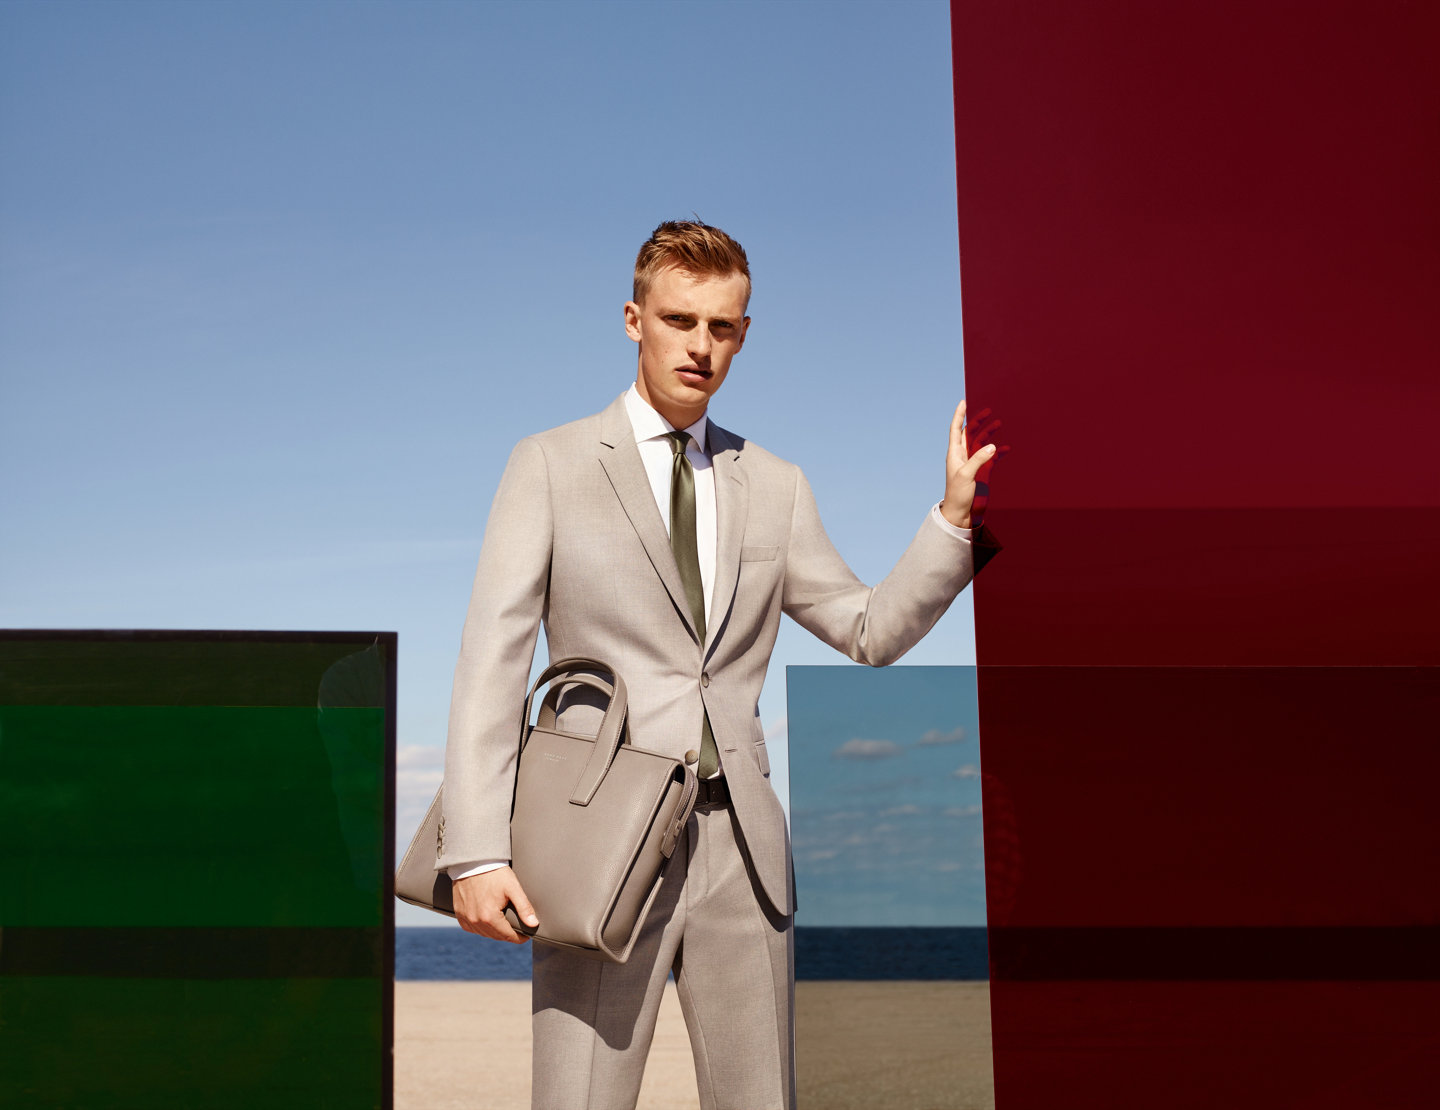 Men model, wearing beige suit